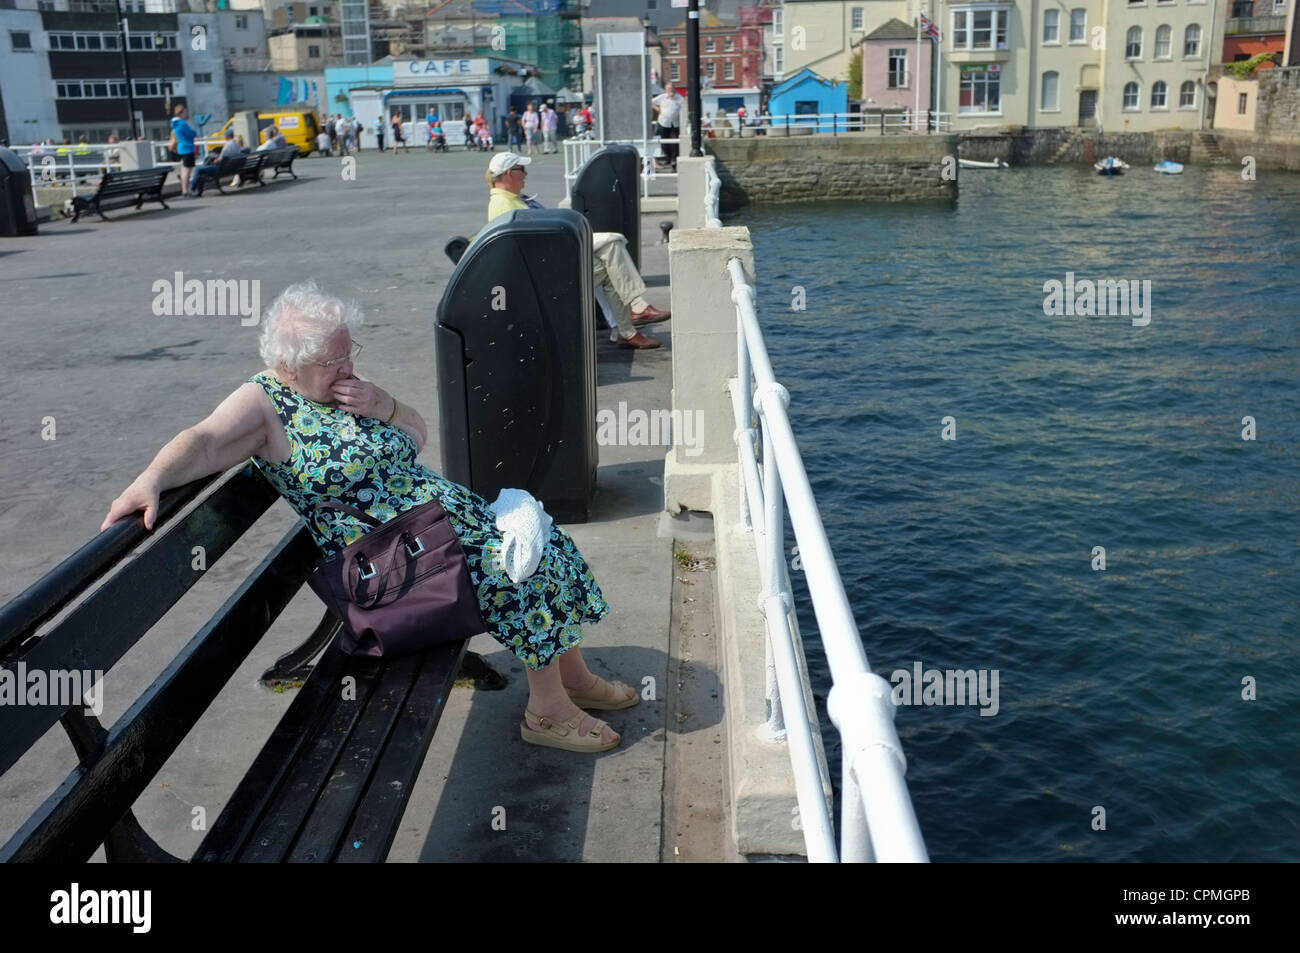 An old lady on a pier in Falmouth, UK - Stock Image